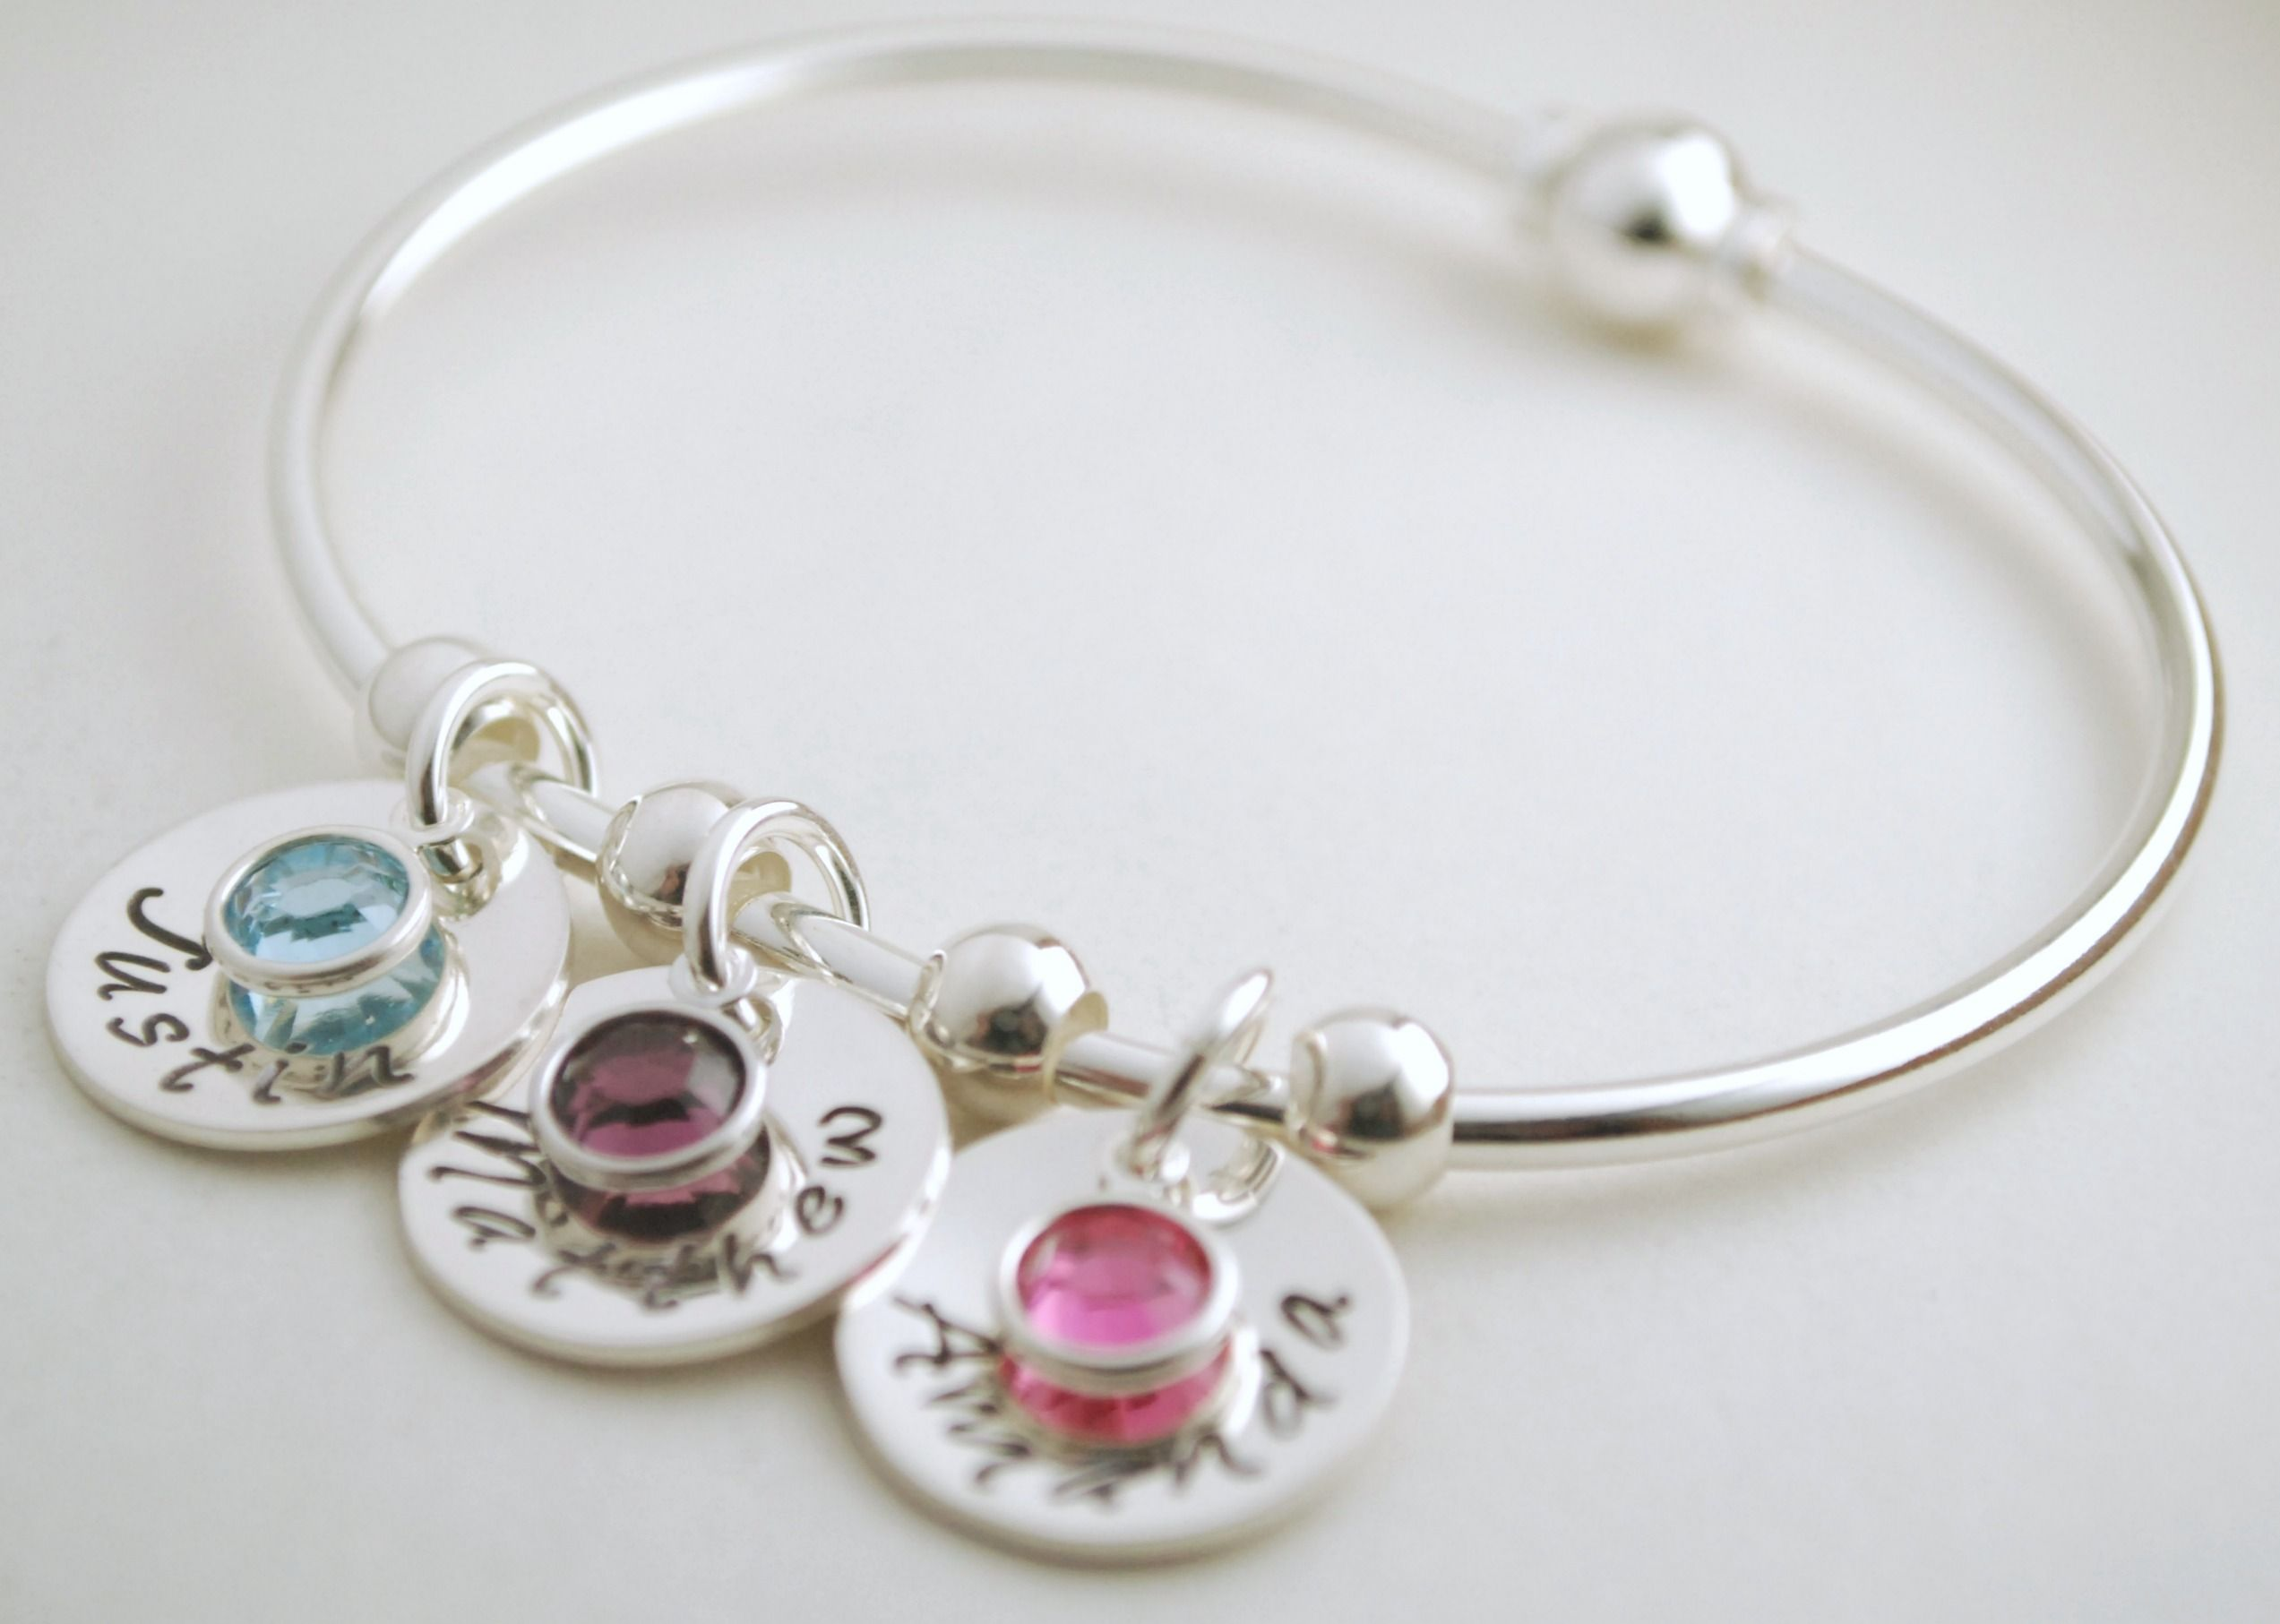 shopping sympathy heart memorial gift shop ashes new bangle personalized cremation birthstone special bracelet etsy remembrance urn bangles